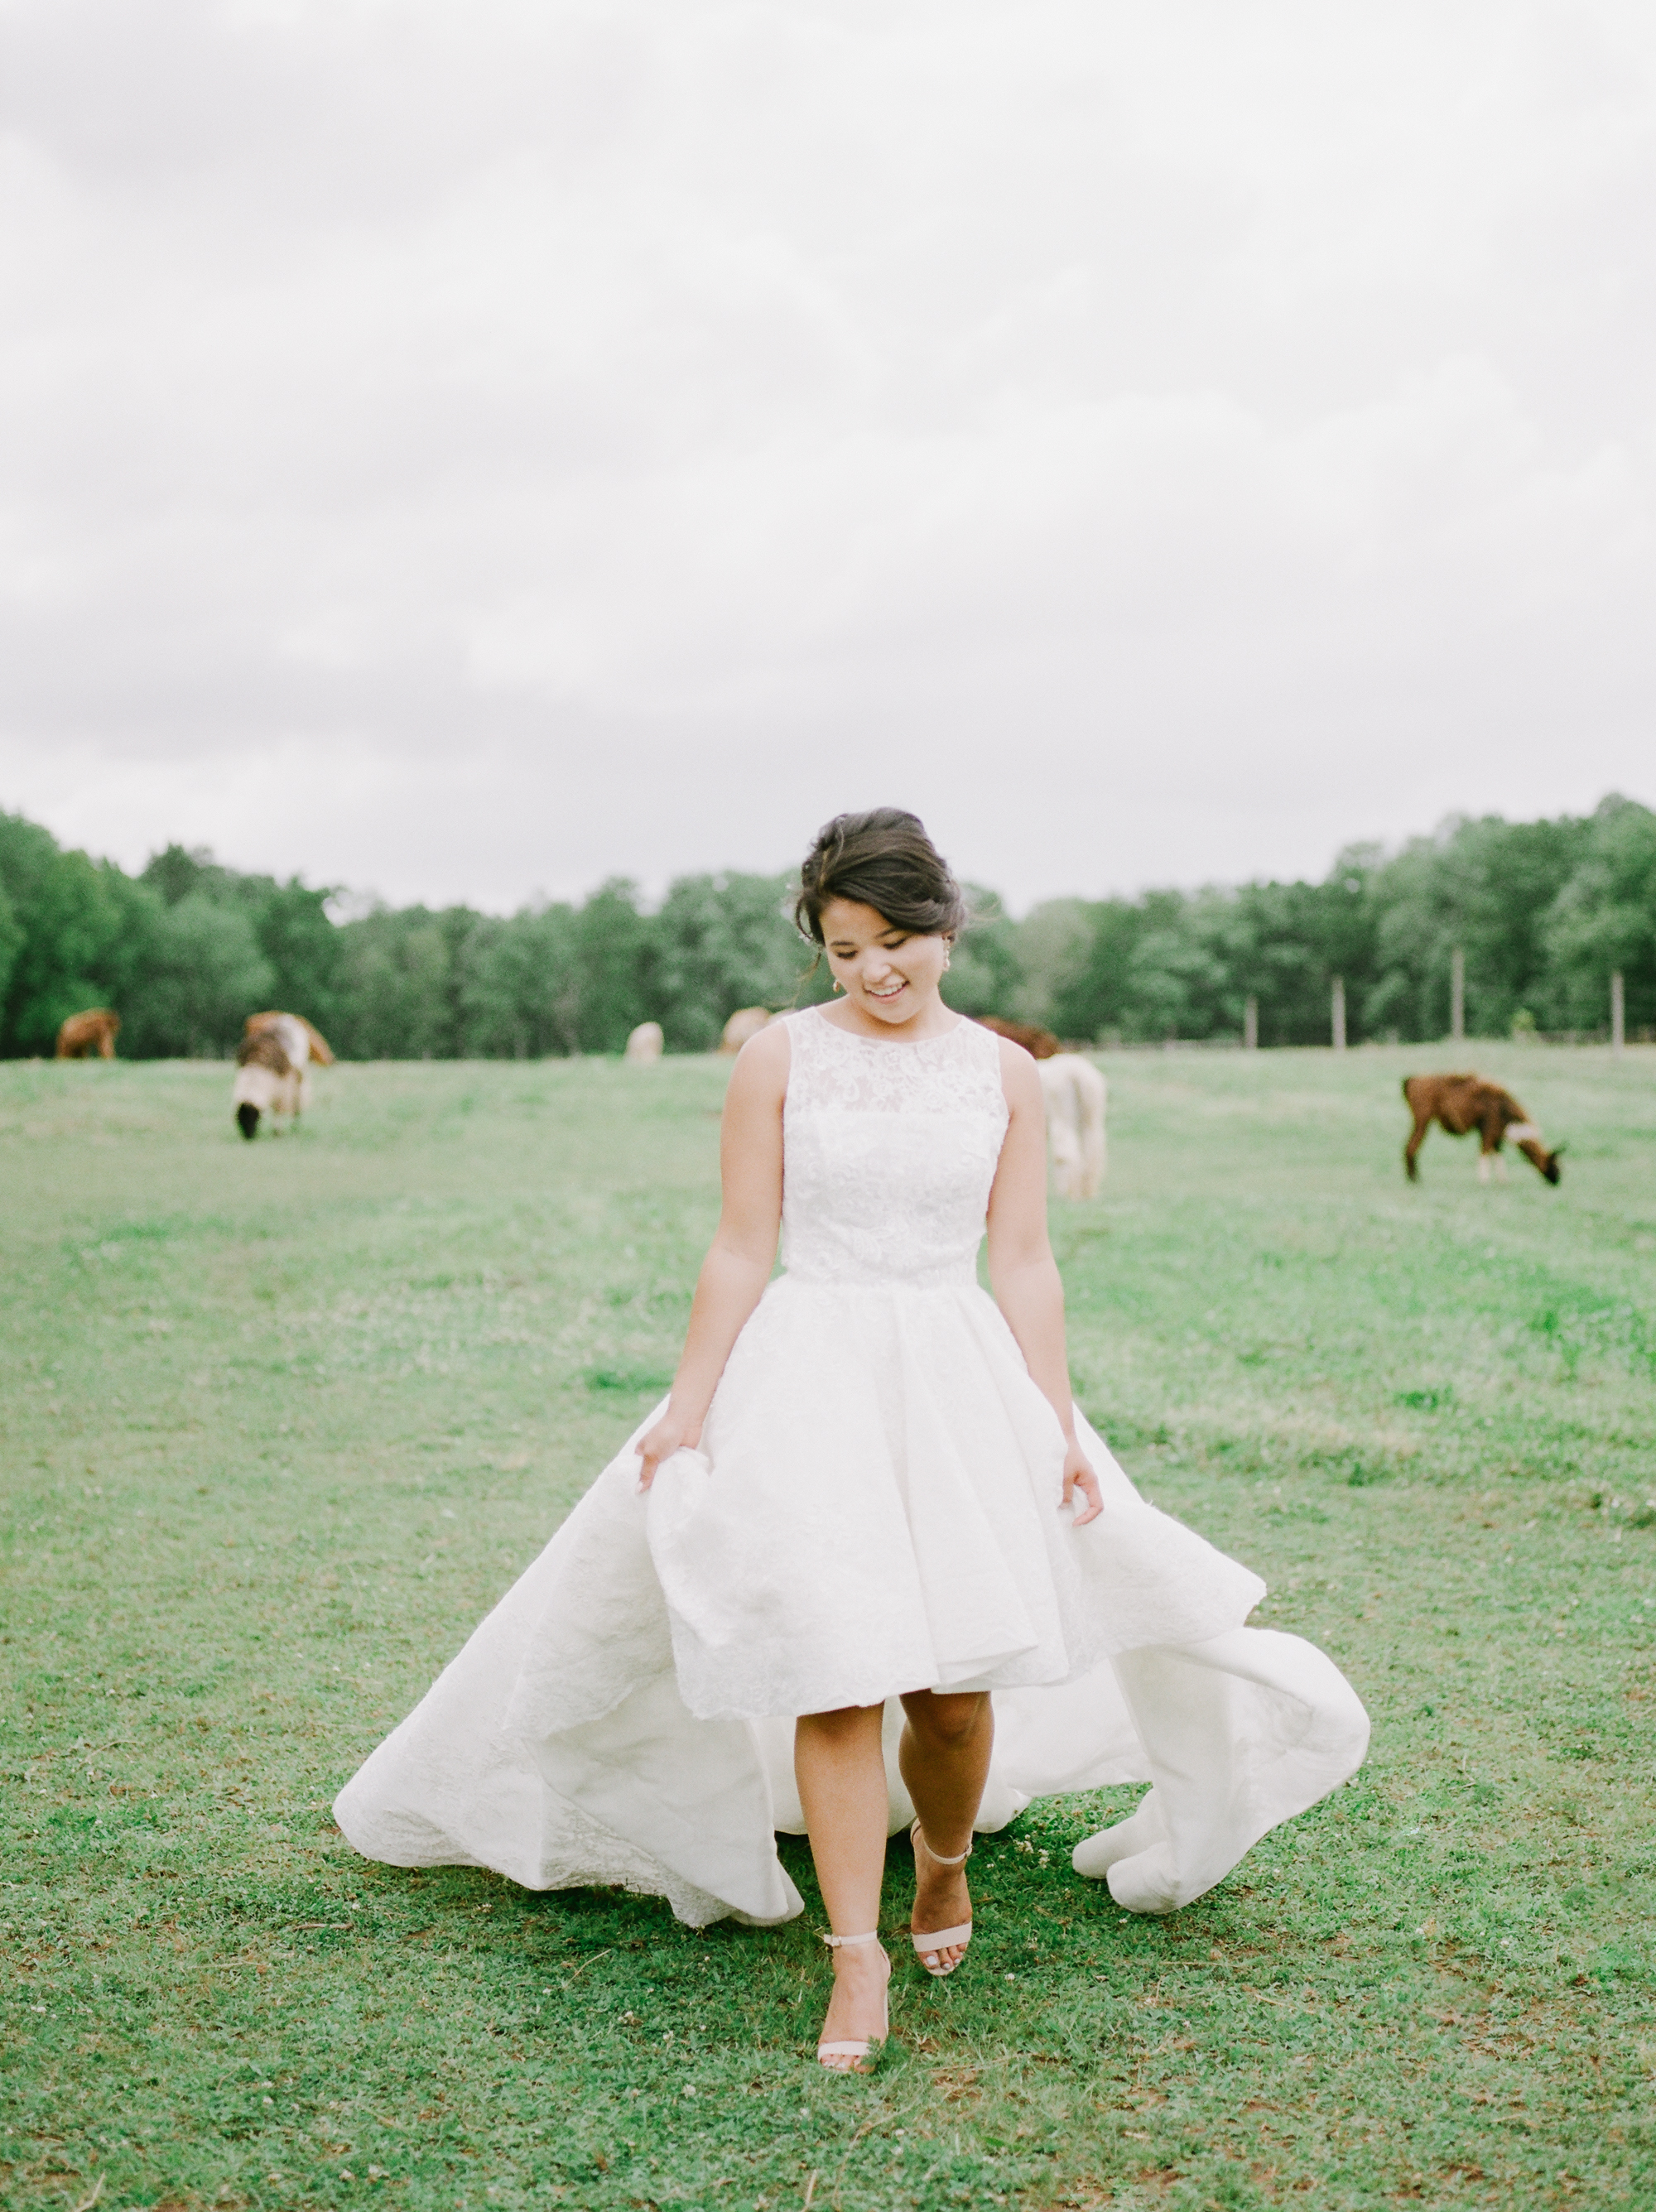 nj_alpaca-farm_wedding_inspiration-80.jpg